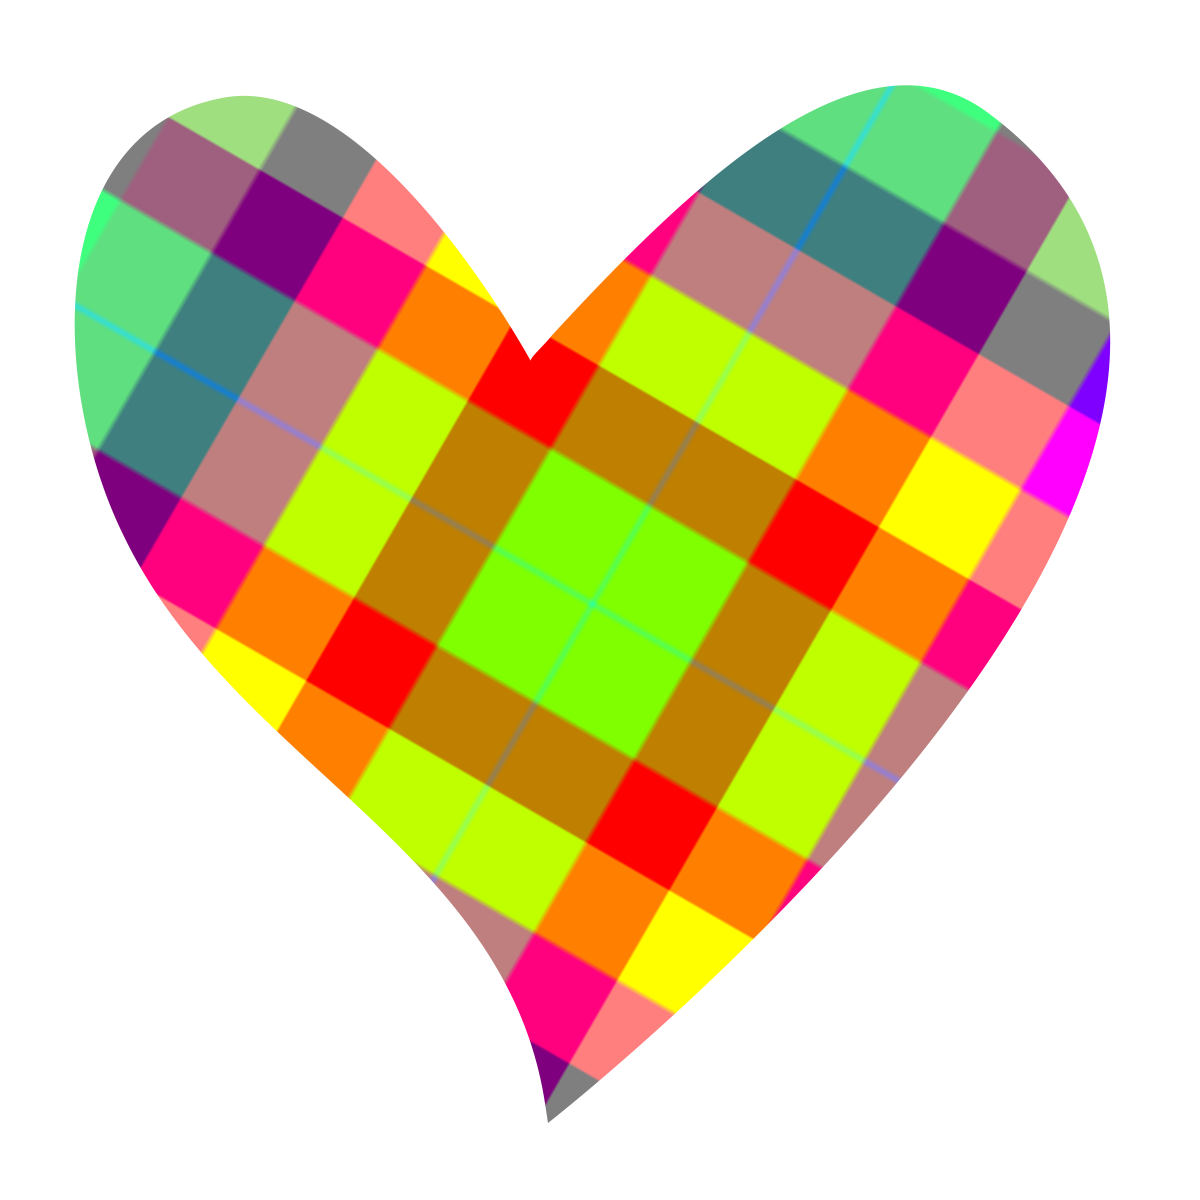 Heart-shaped clipart #6, Download drawings